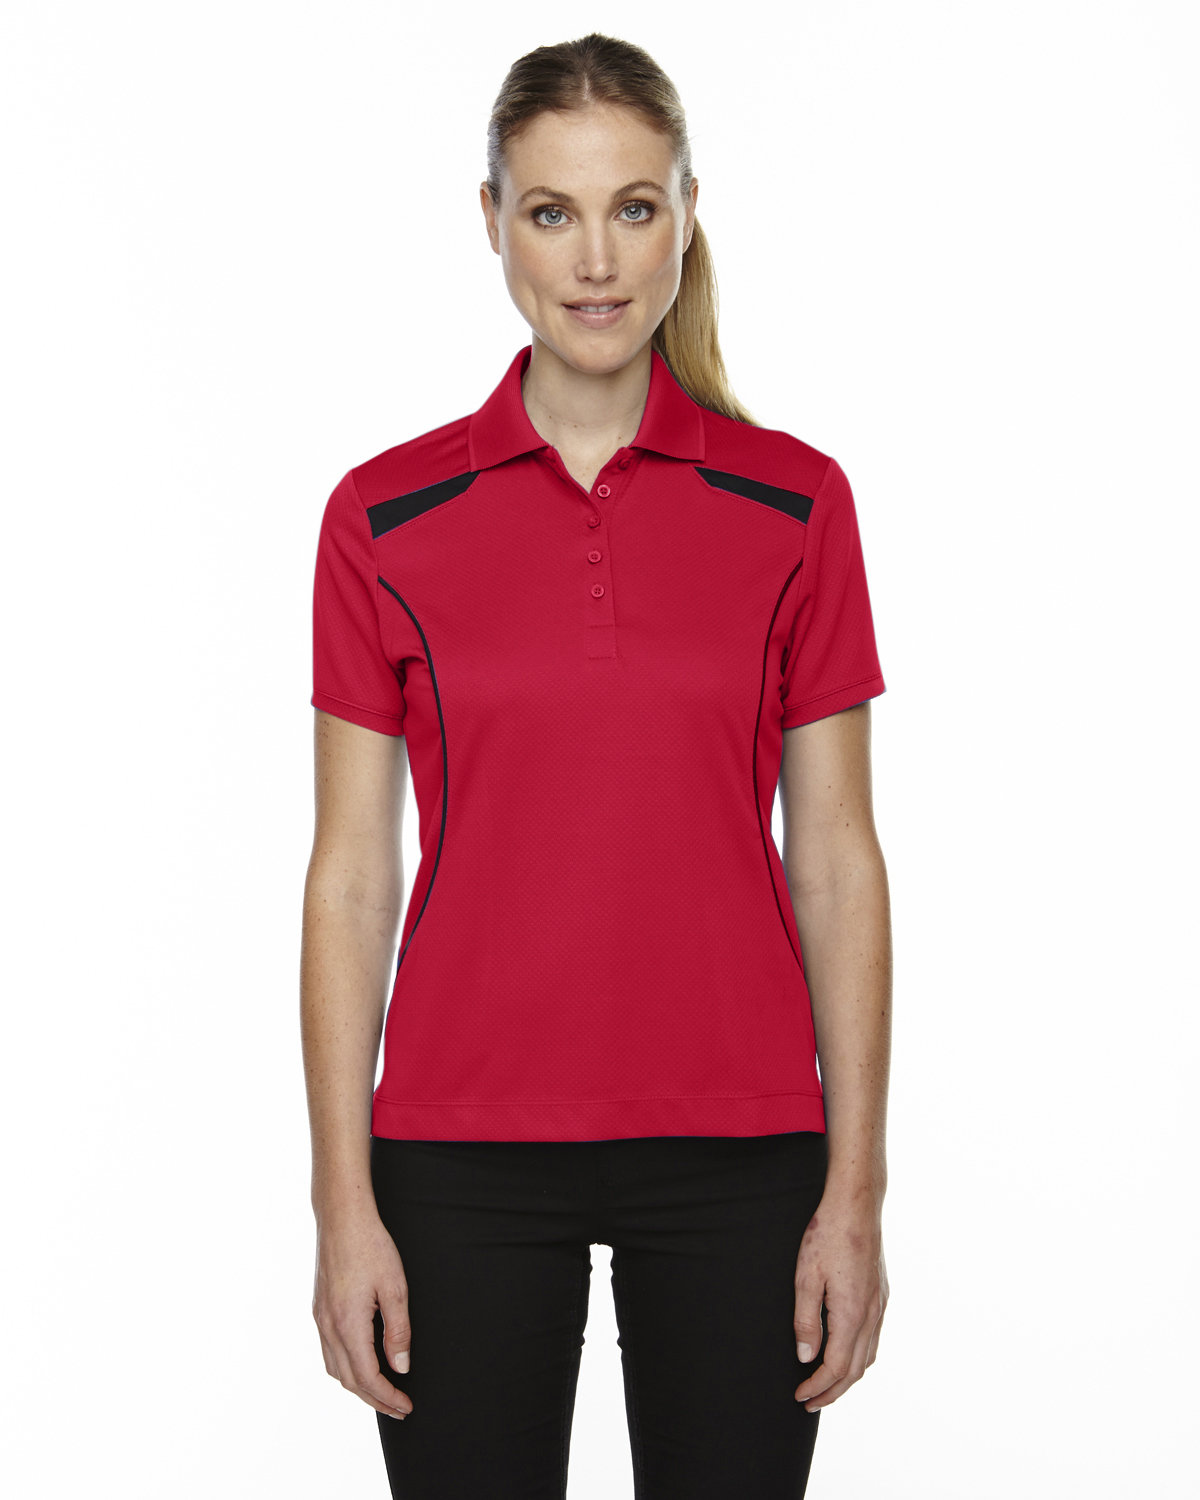 Extreme Ladies' Eperformance™' Tempo Recycled Polyester Performance Textured Polo CLASSIC RED